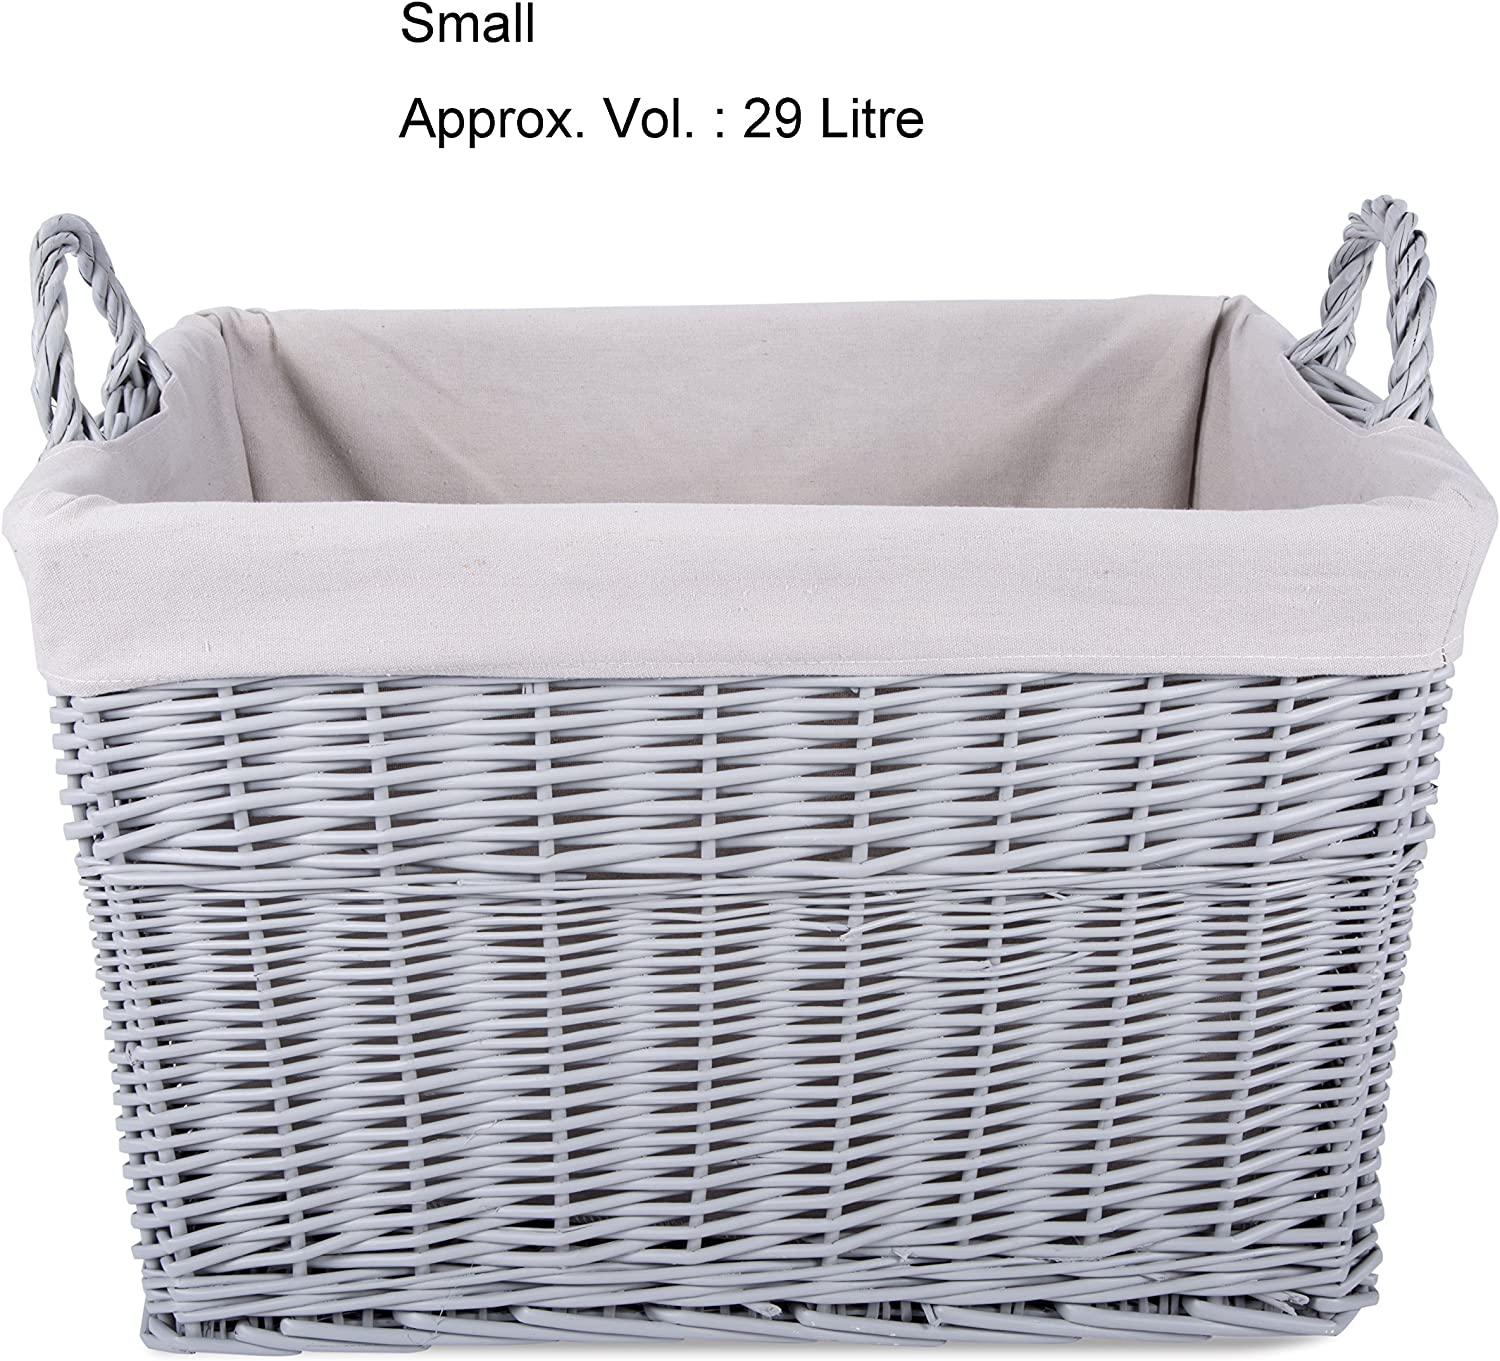 Home Storage Grey Painted Rectangule Wicker Basket Laundry Toys Baby Nursery Collection Box (Small)